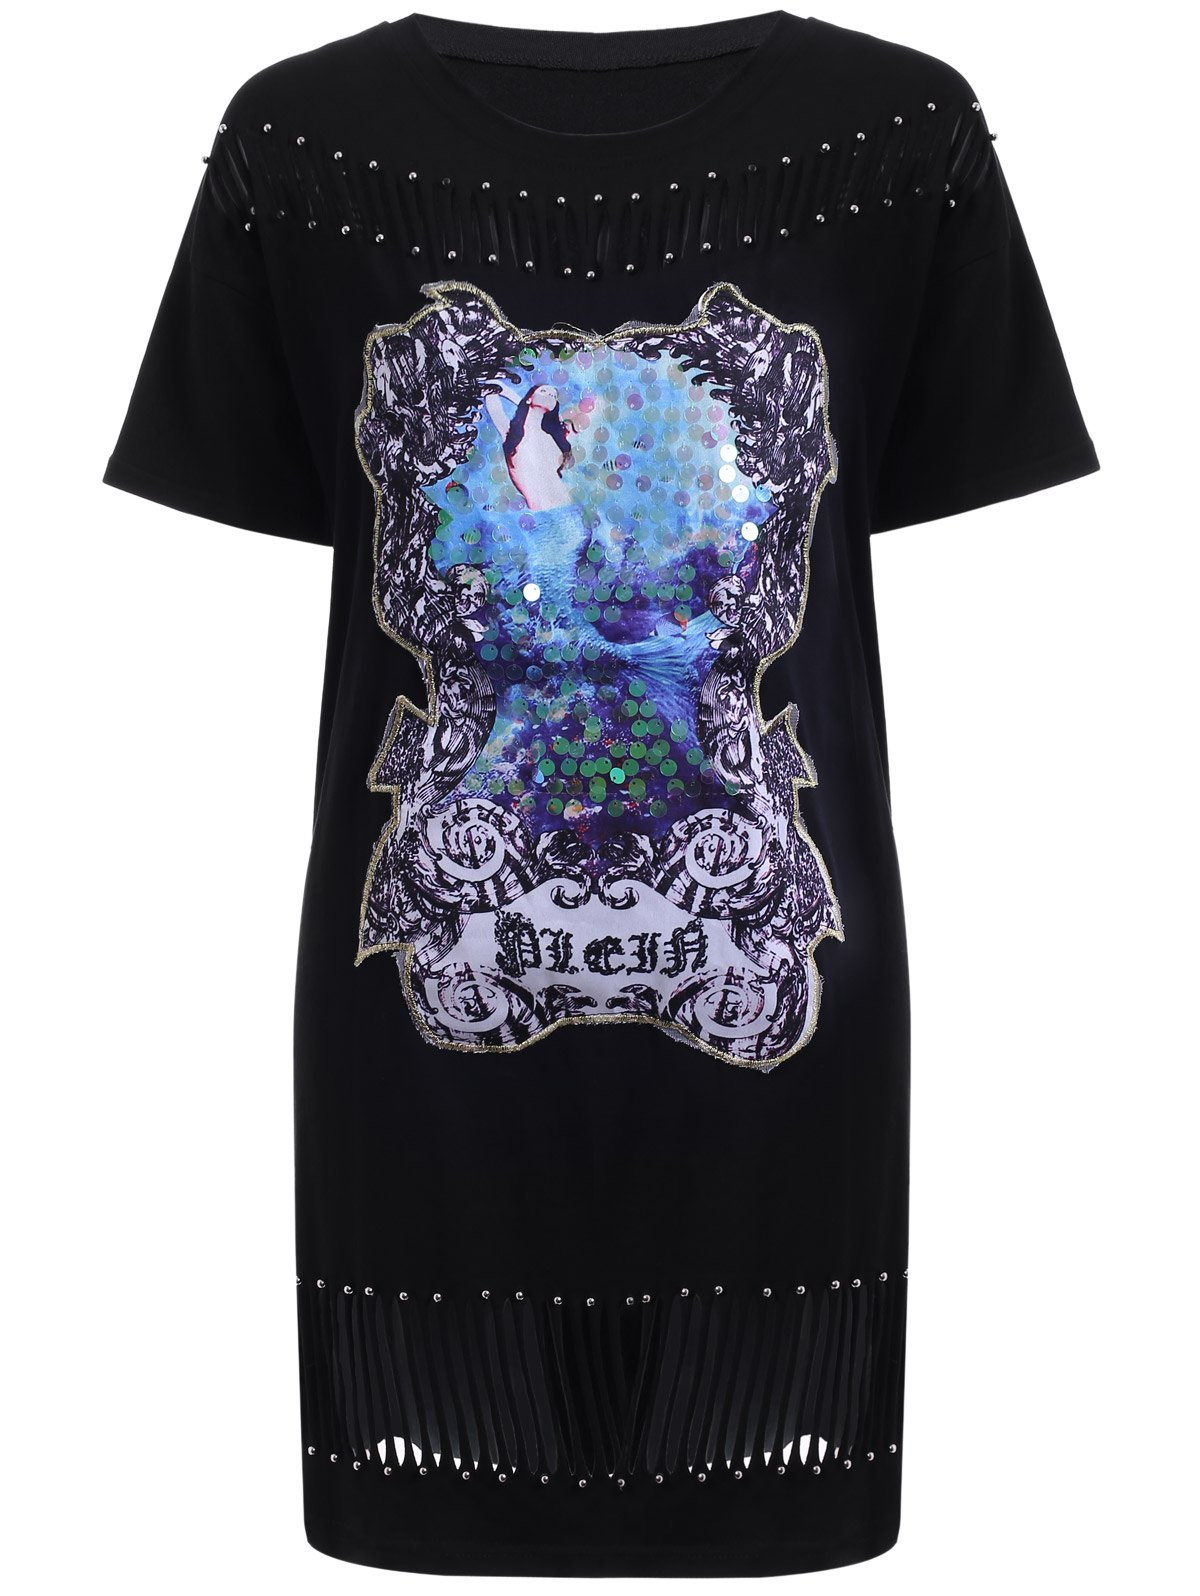 Stylish Women's Round Neck Short Sleeve Sequined Cut Out T-Shirt Dress - BLACK ONE SIZE(FIT SIZE XS TO M)